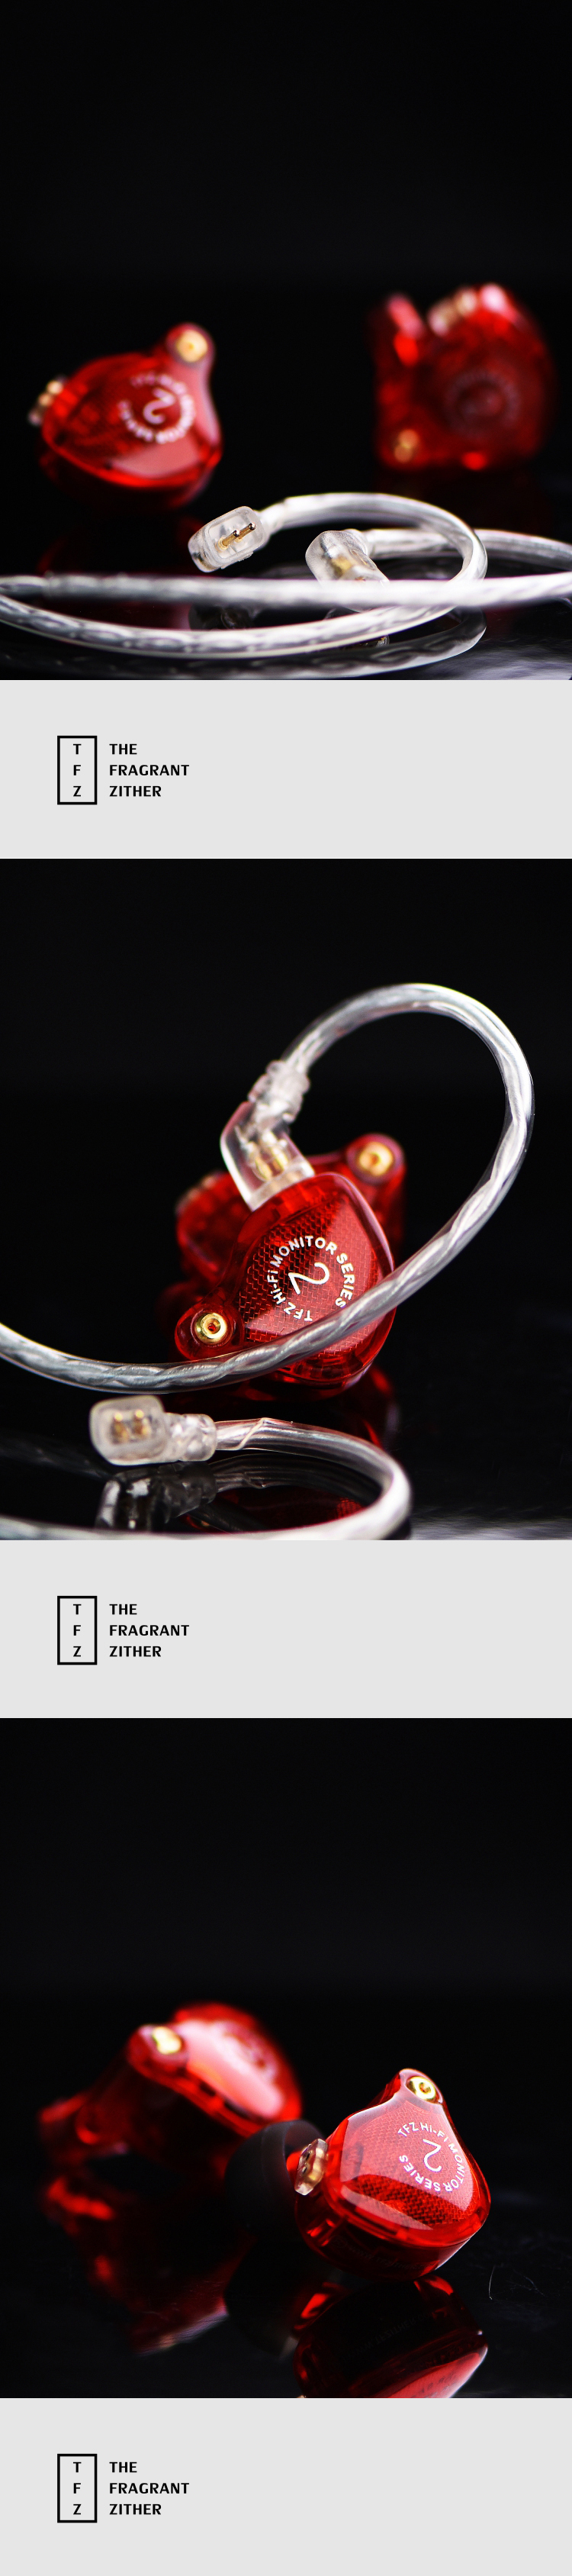 The Fragrant Zither TFZ Series 2 S2 HIFI In-Ear-Monitor Earphones